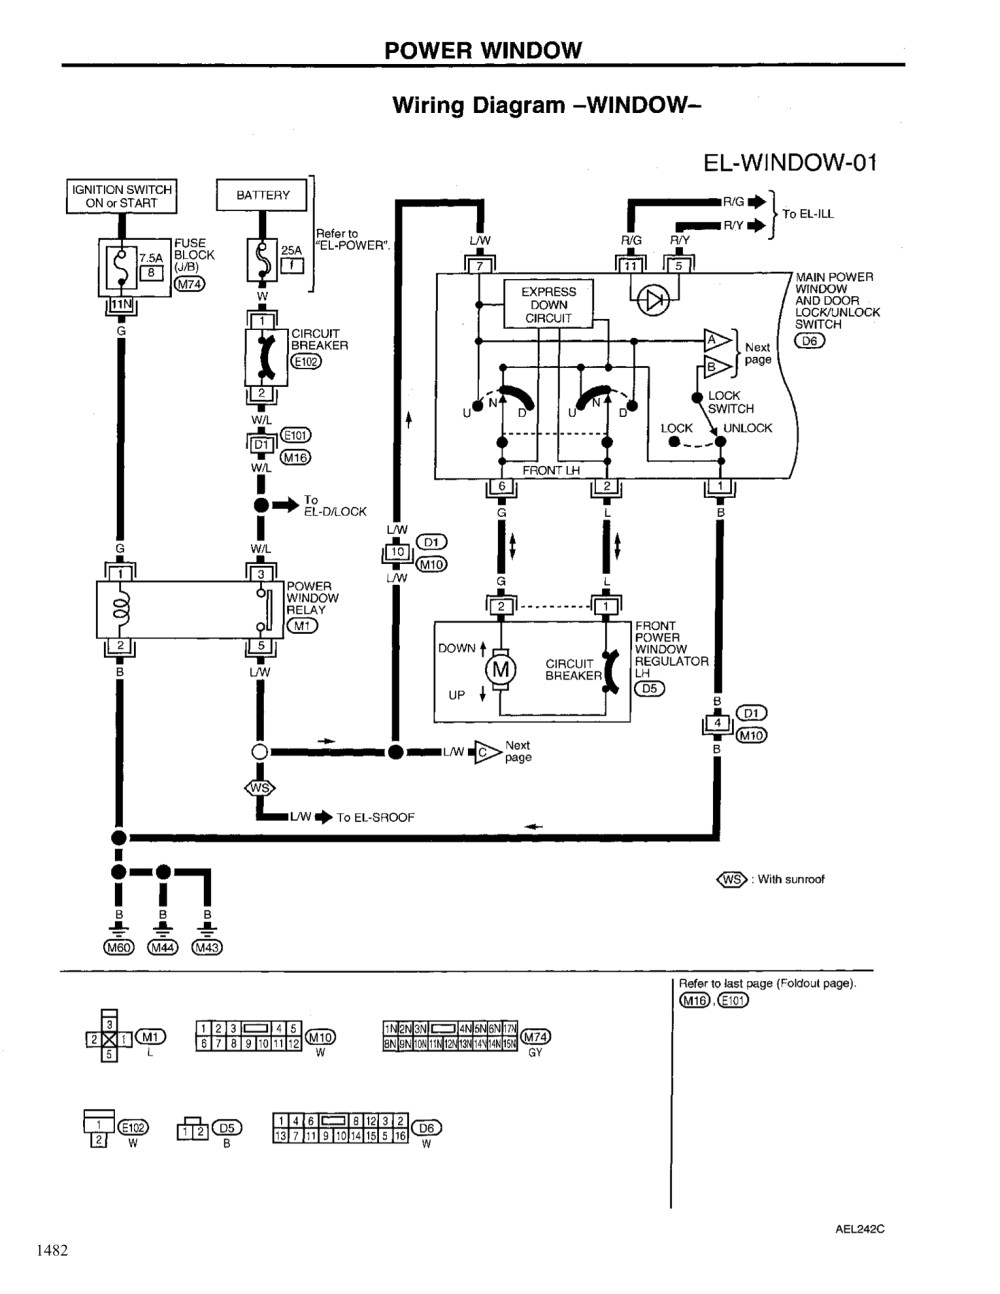 power window switch wiring schematic Collection-2004 Nissan Altima Power Window Wiring Diagrams Schematics 3-c